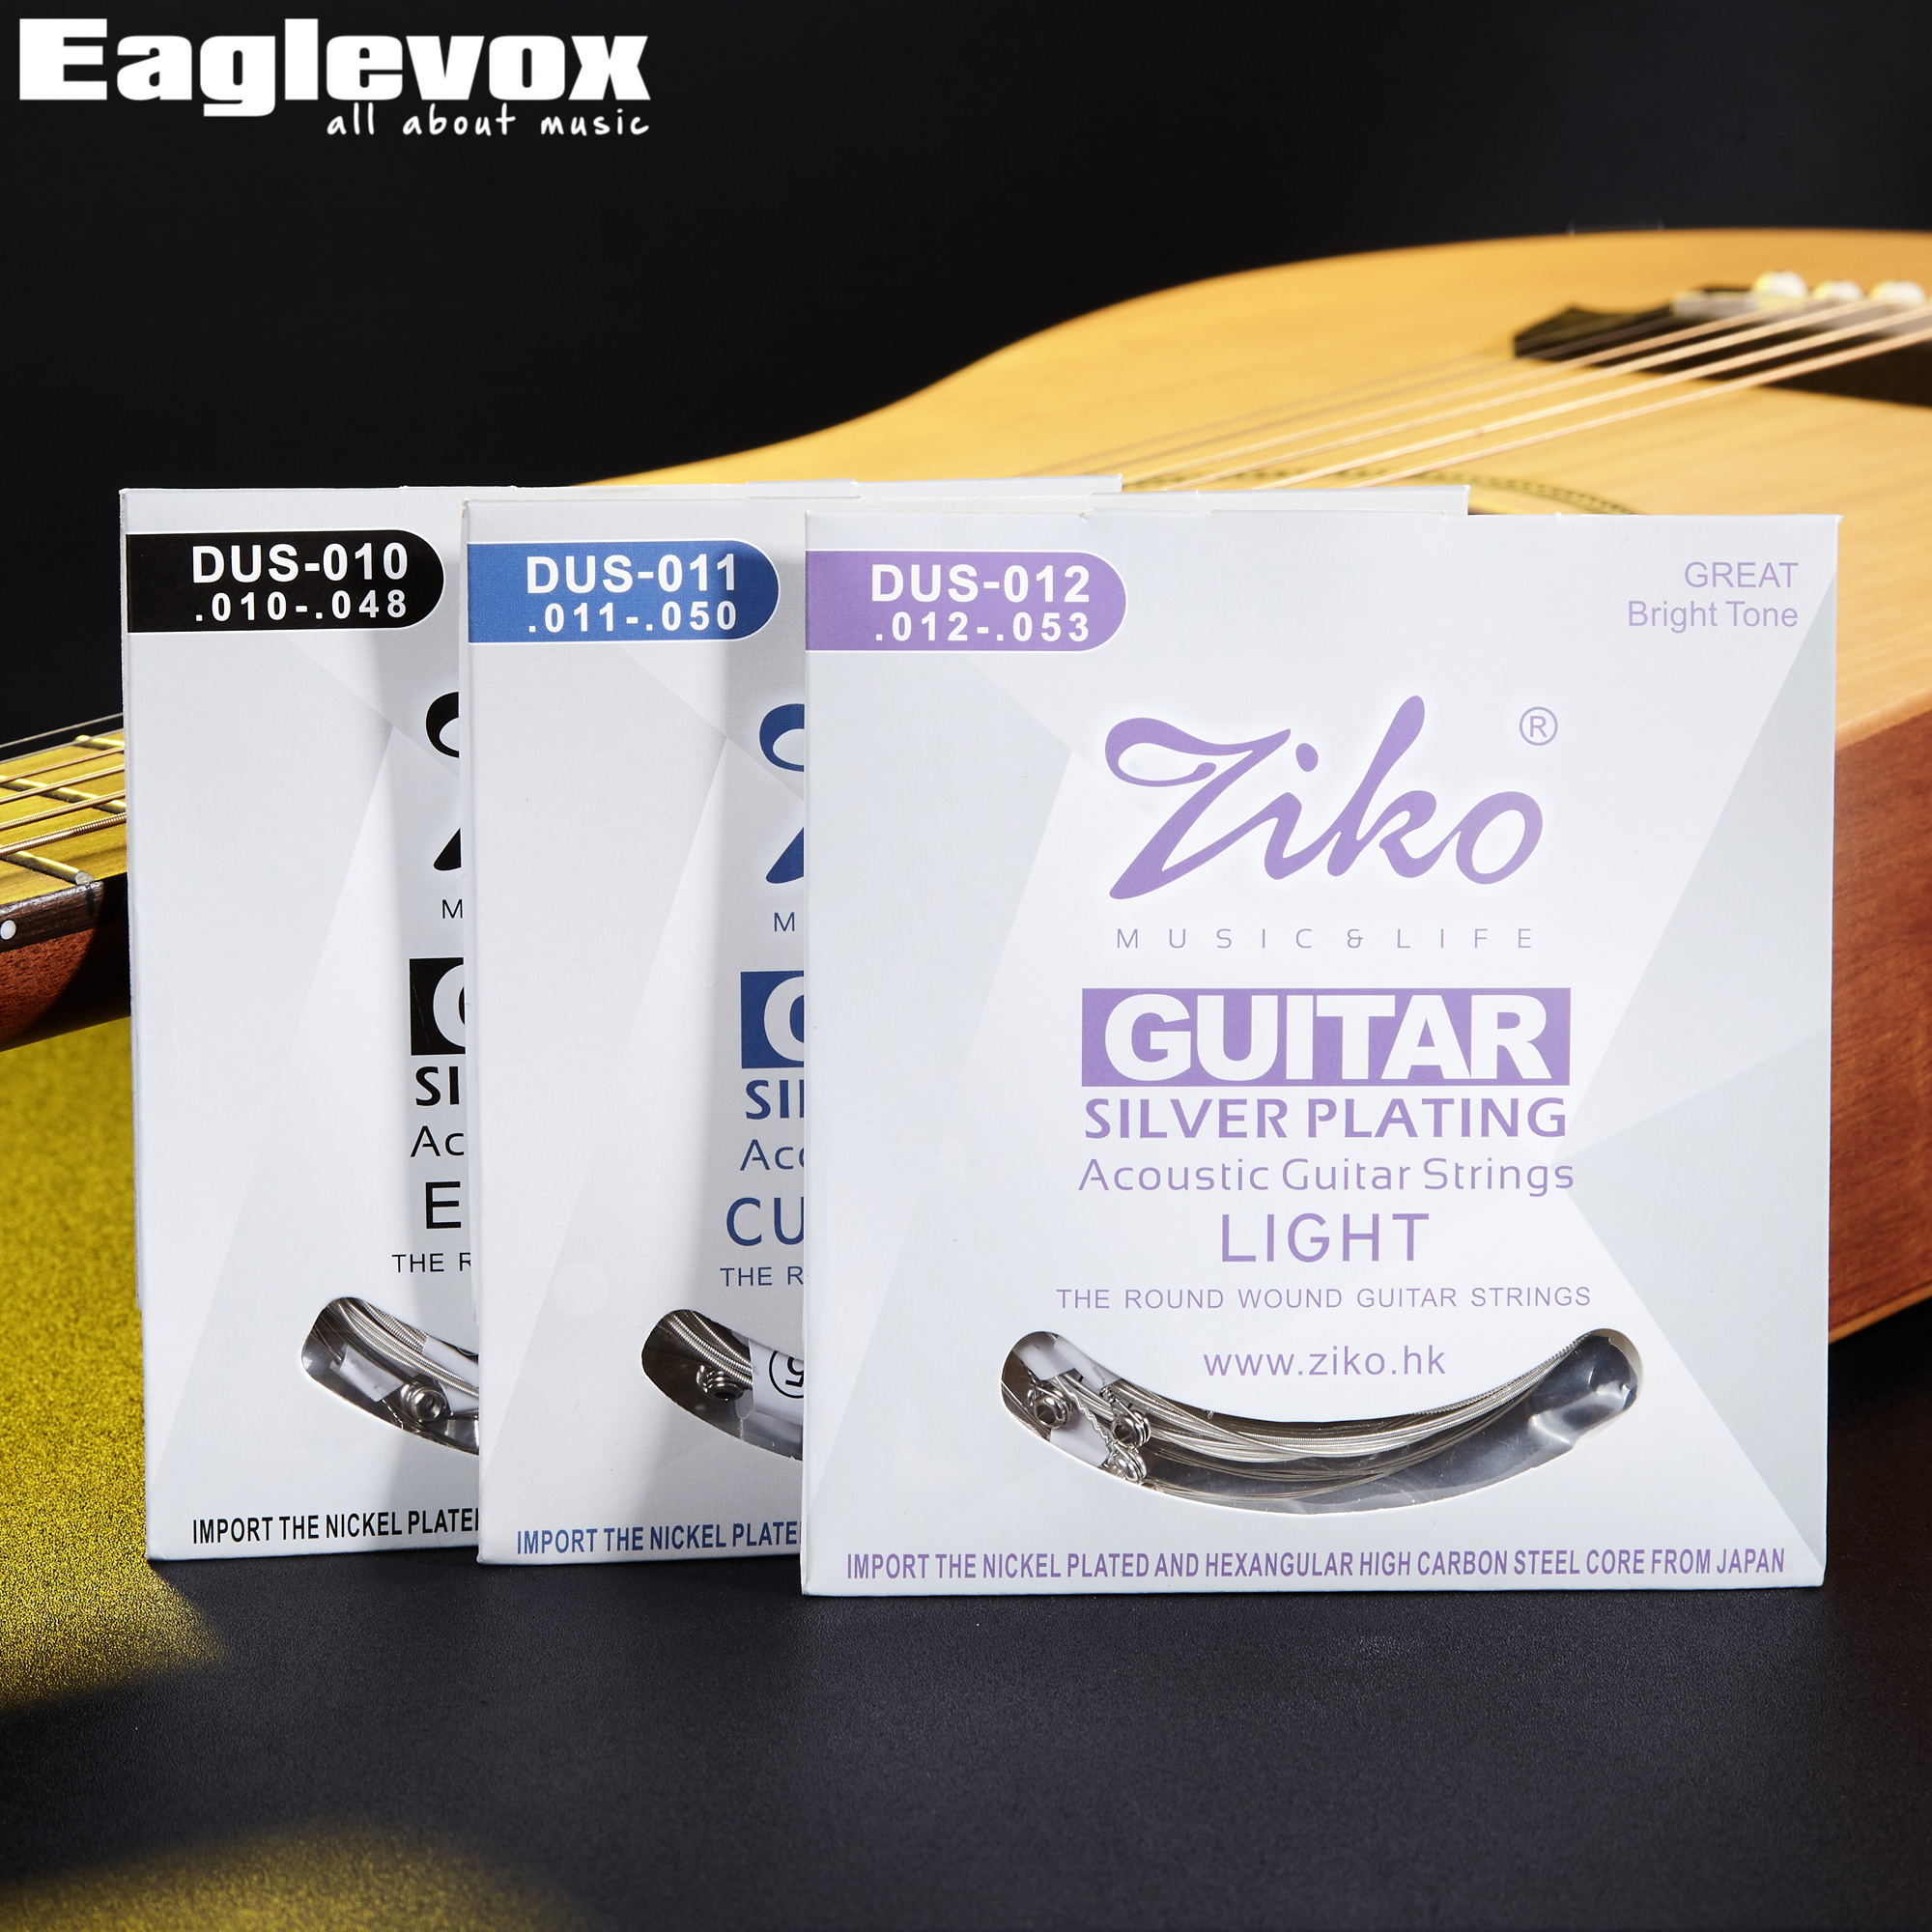 Ziko Acoustic Guitar Strings Hexagon High Carbon Steel Core Silver Planting Material Import from Japan 010 011 012 DUS 10sets acoustic guitar strings set 010 011 012 super light steel strings gauge 6pcs set acoustic wound guitar strings amn10